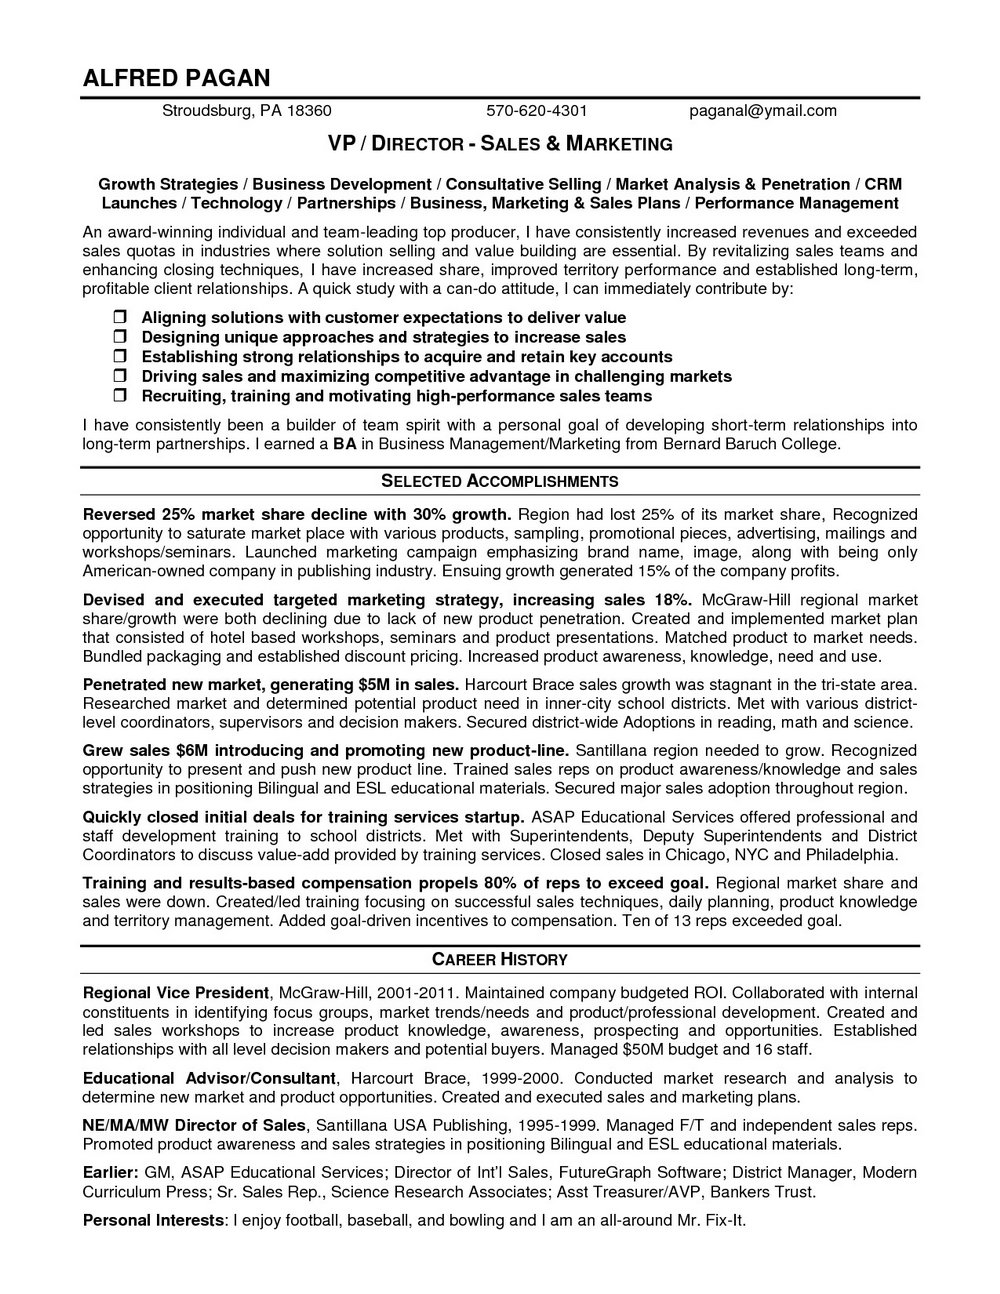 Sample Resume For Sales Manager In Hotel